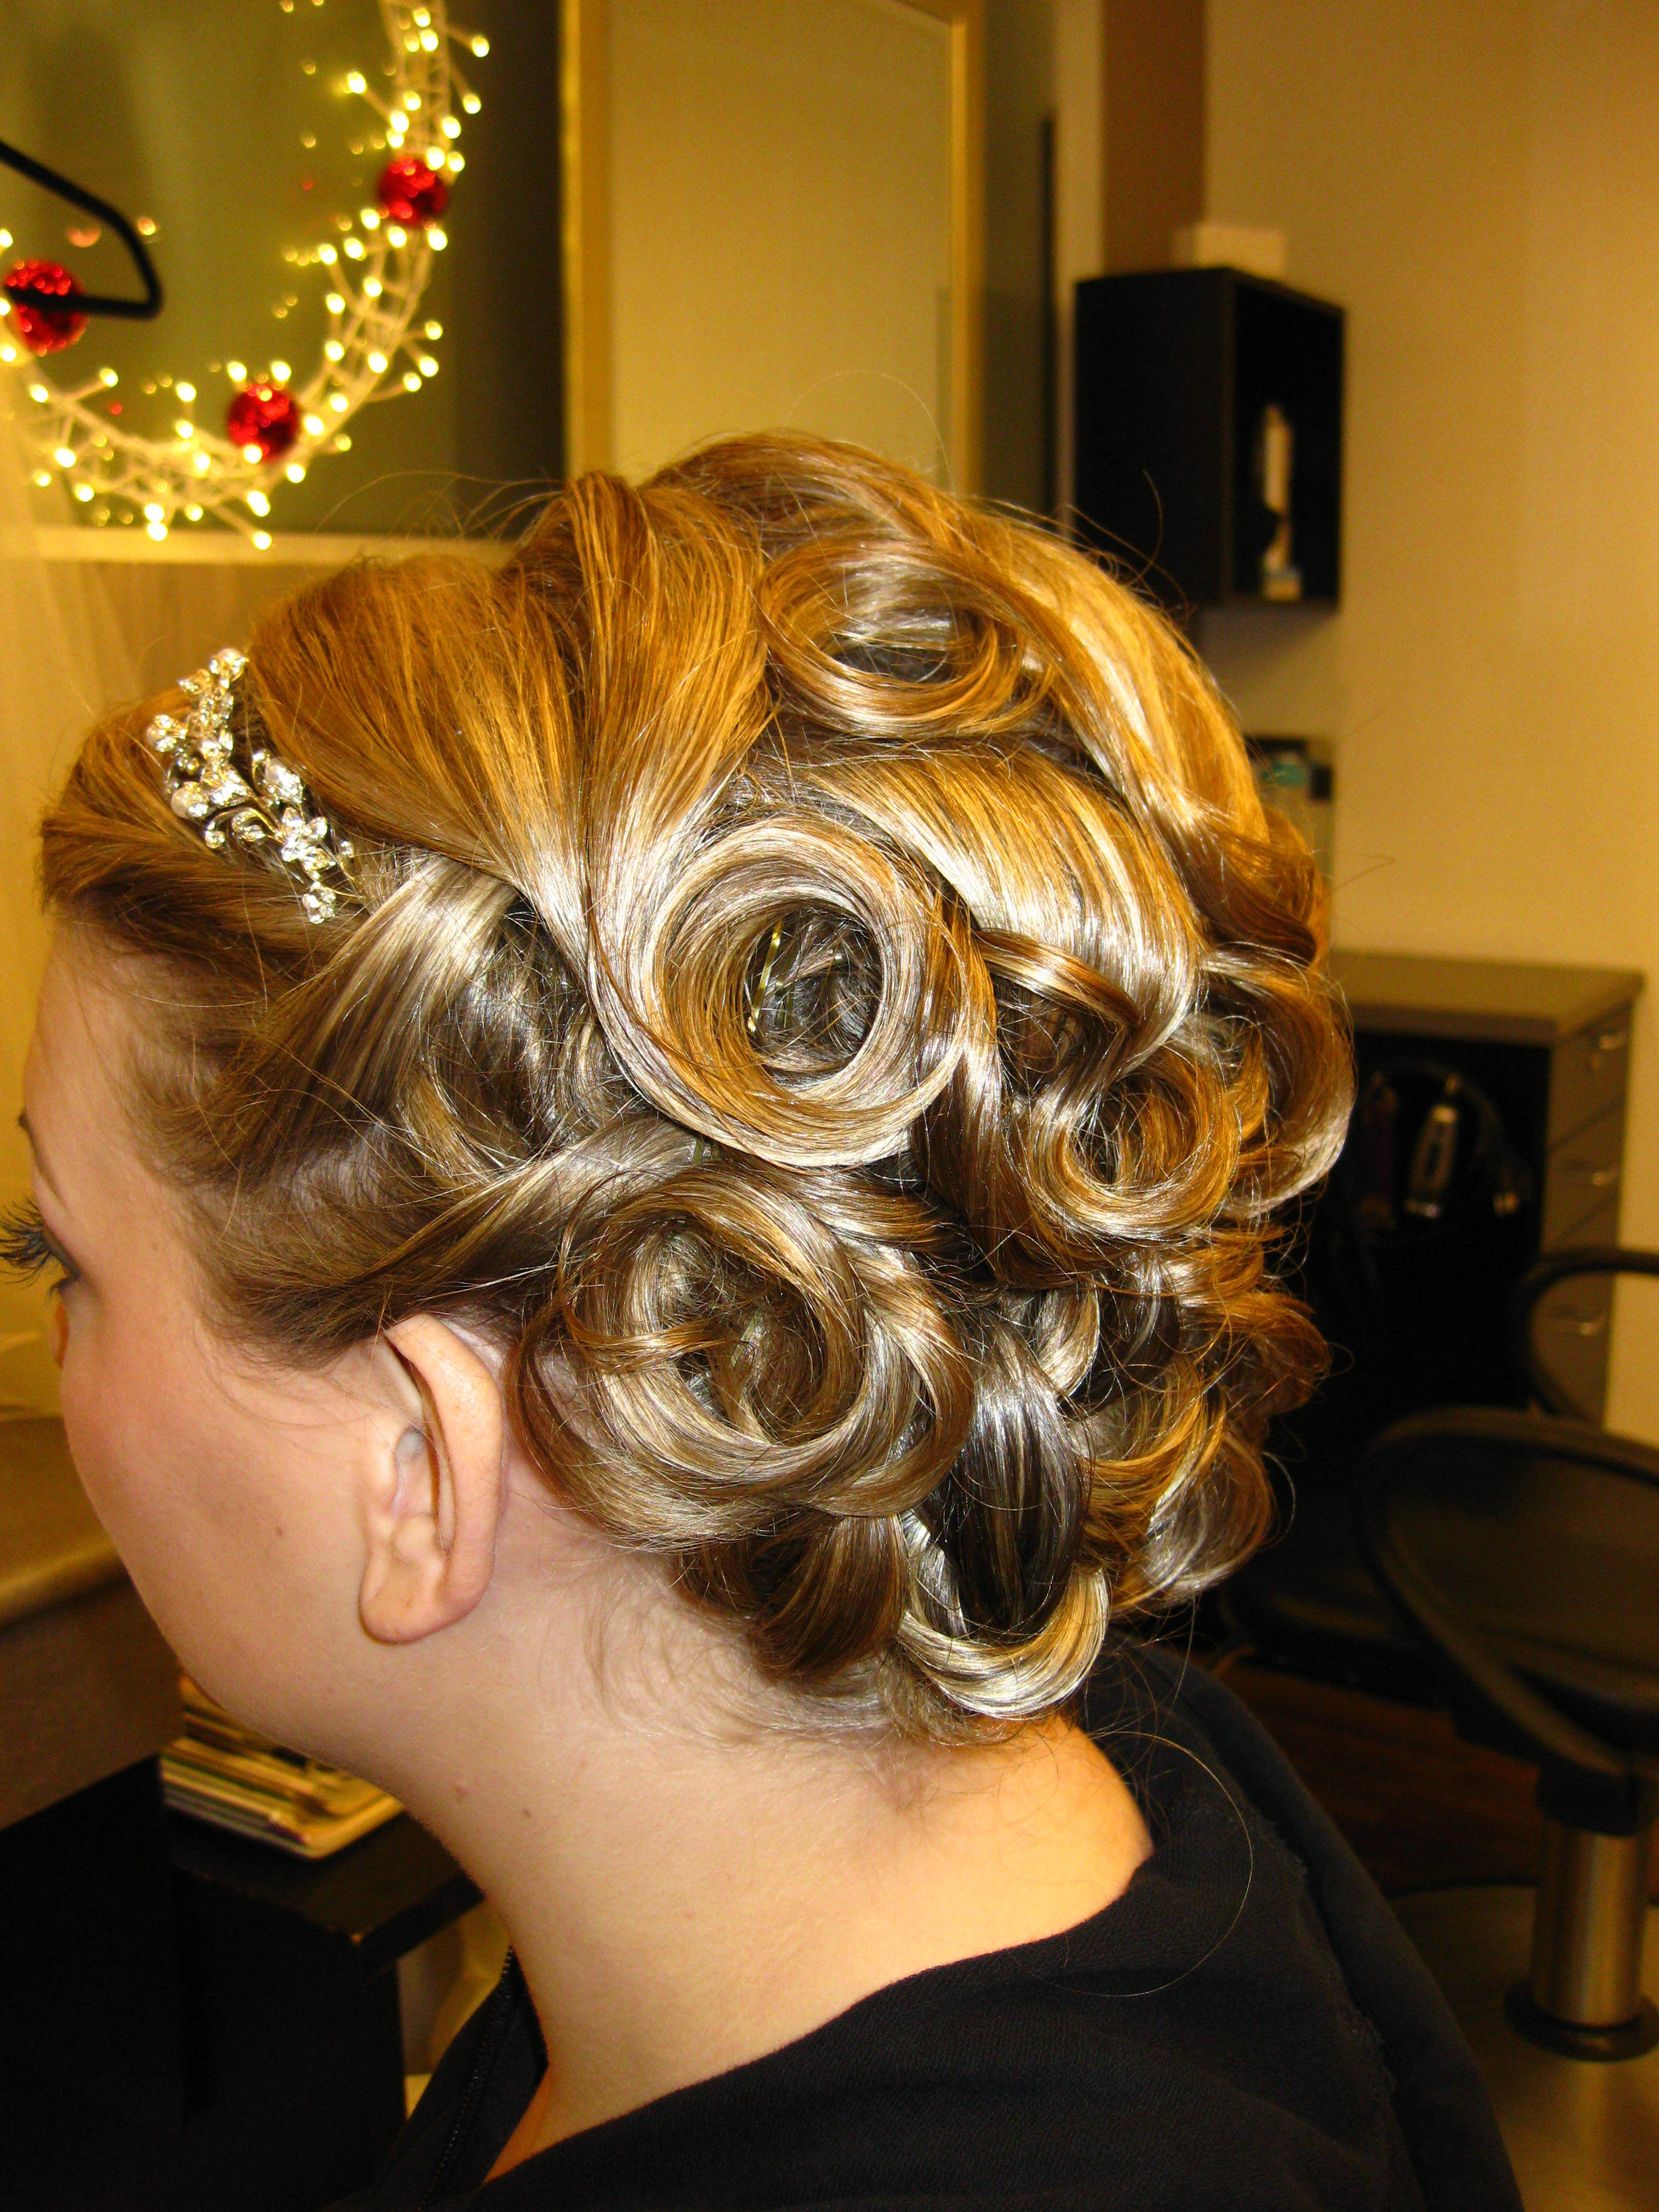 Beauty, Updo, Hair, Blonde, Curls